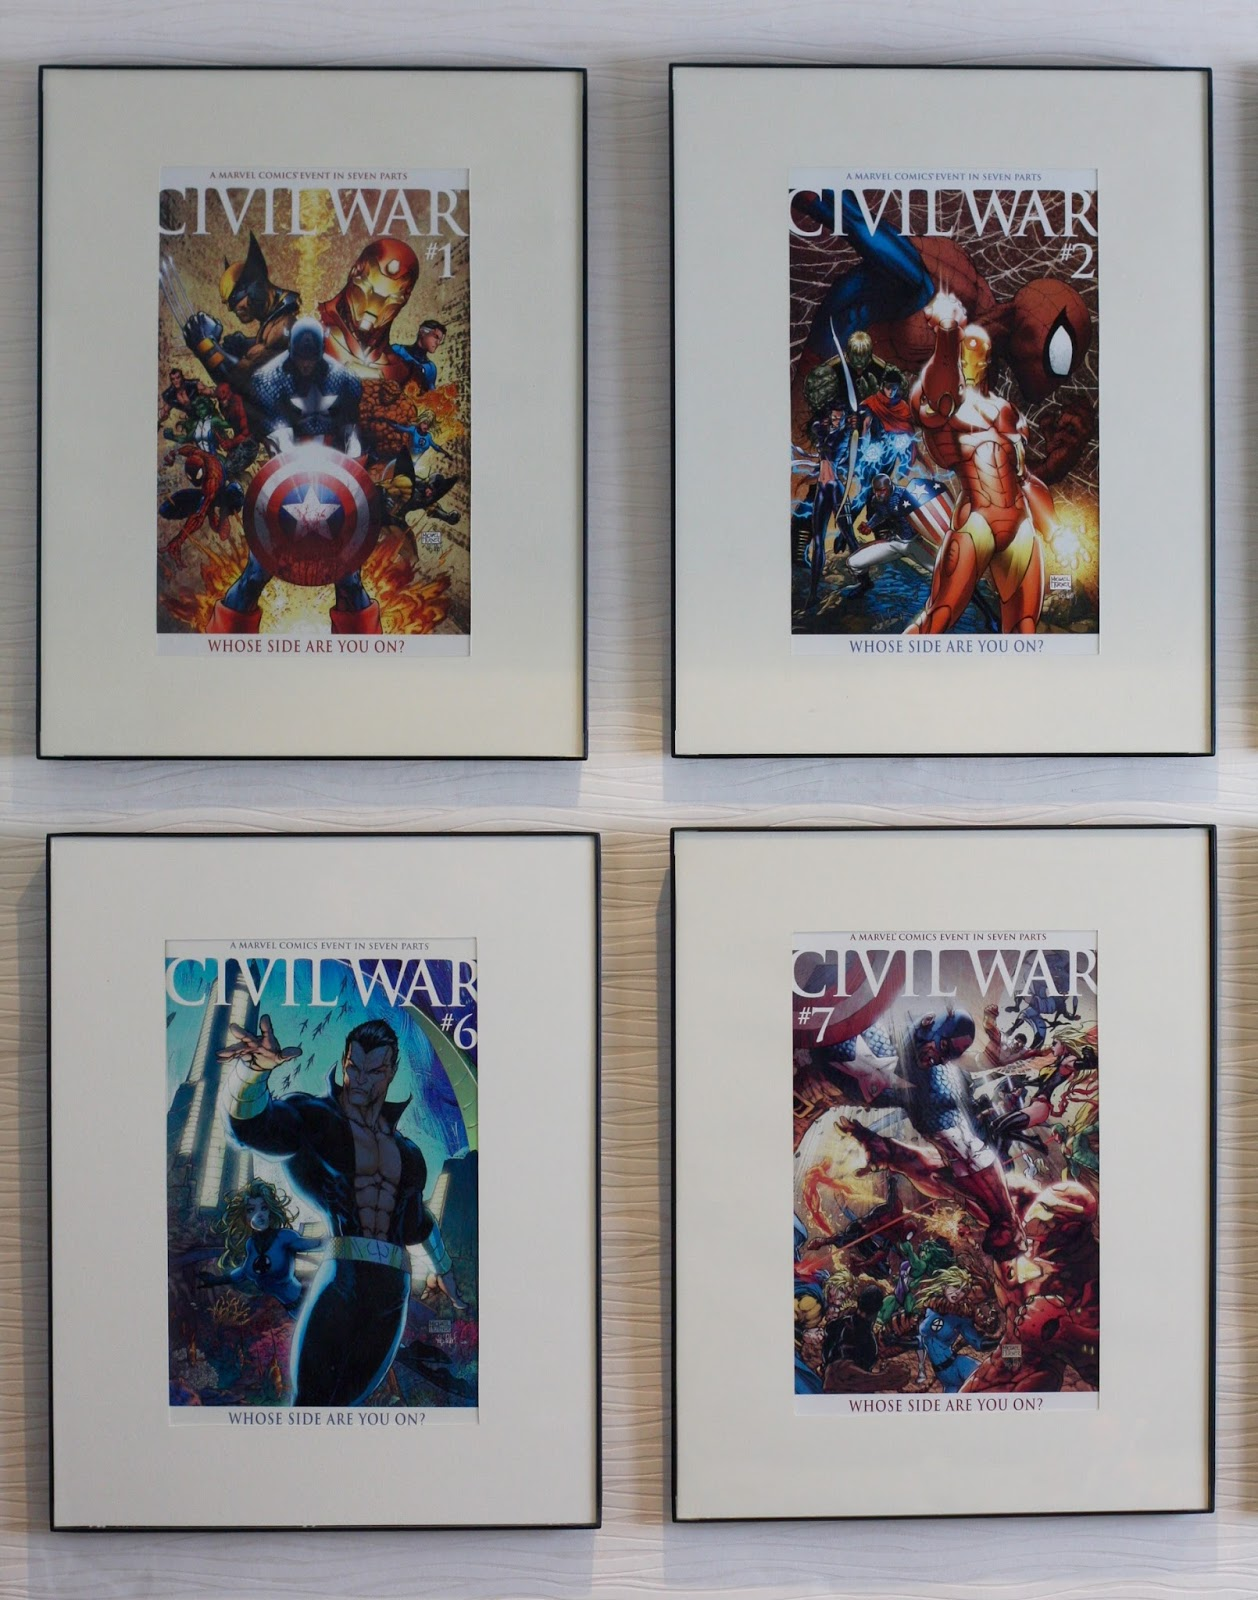 GEEK DIY BAM!: MARVEL COMIC BOOK FRAMES DISPLAY WALL DIY INSPIRATION